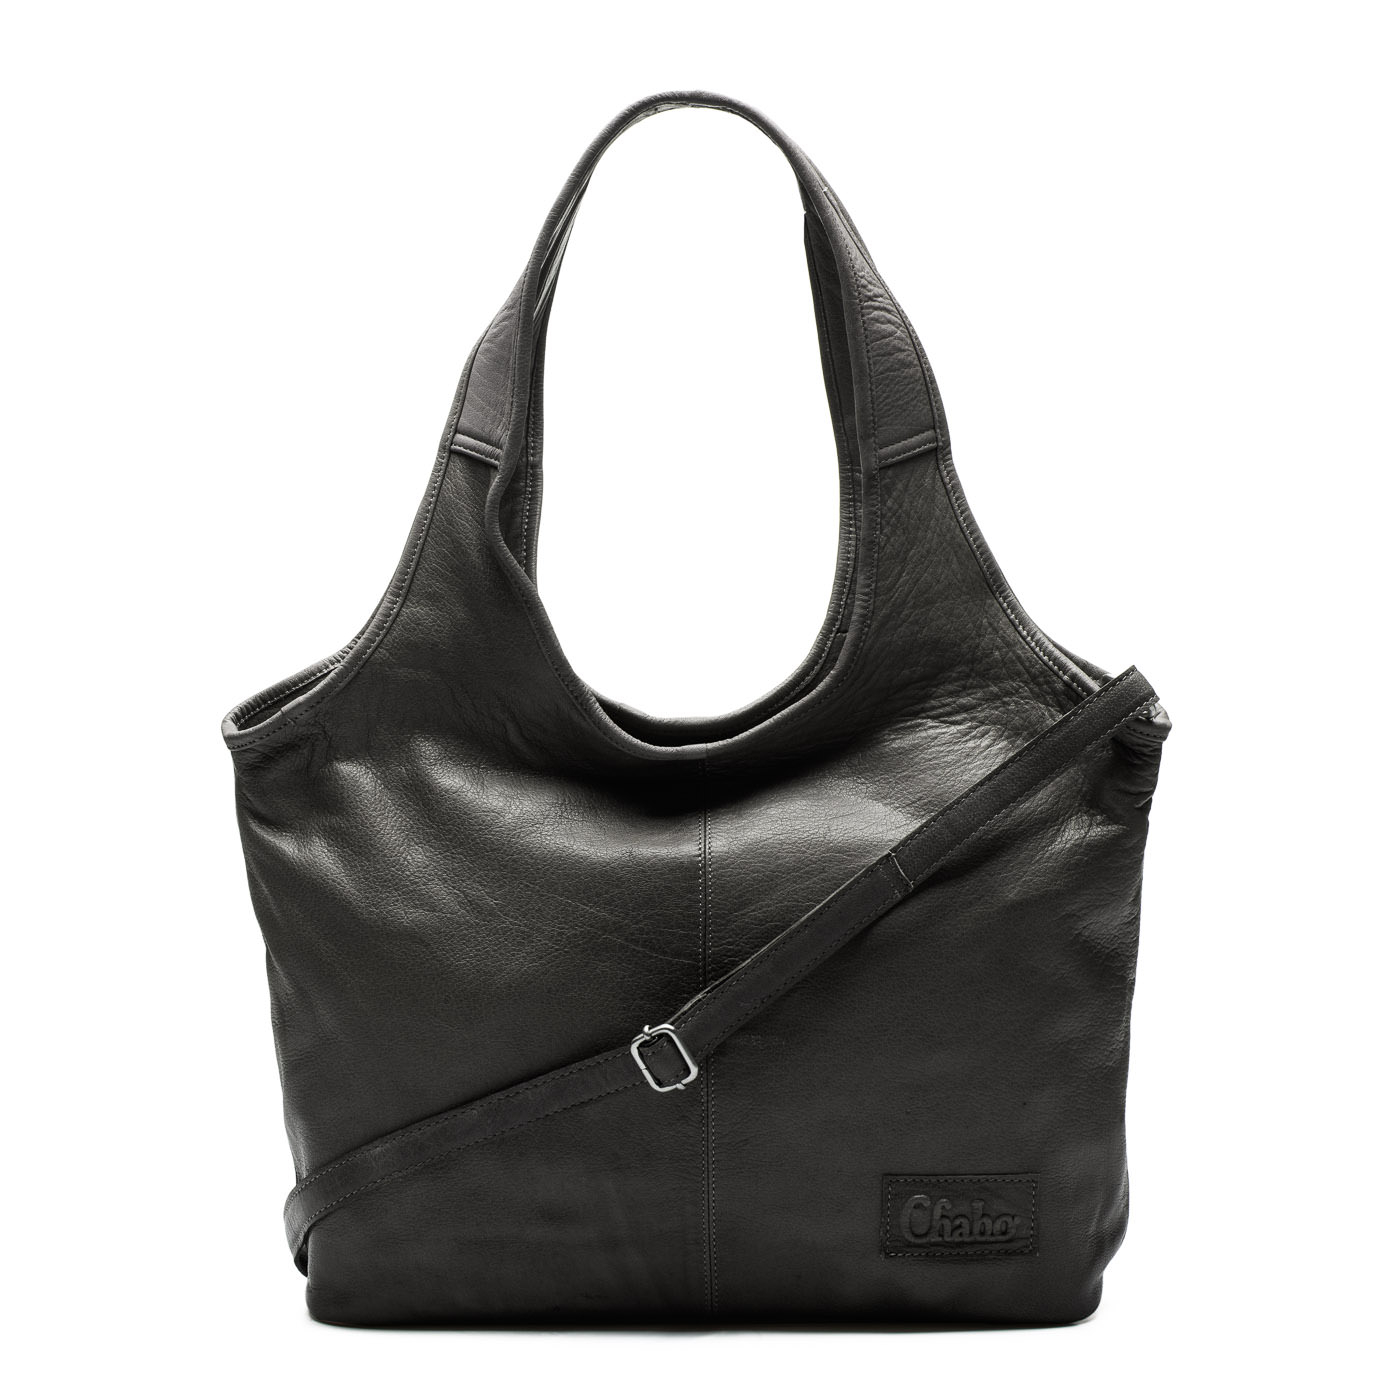 Chabo Bags Beauty cabas 8719274534020